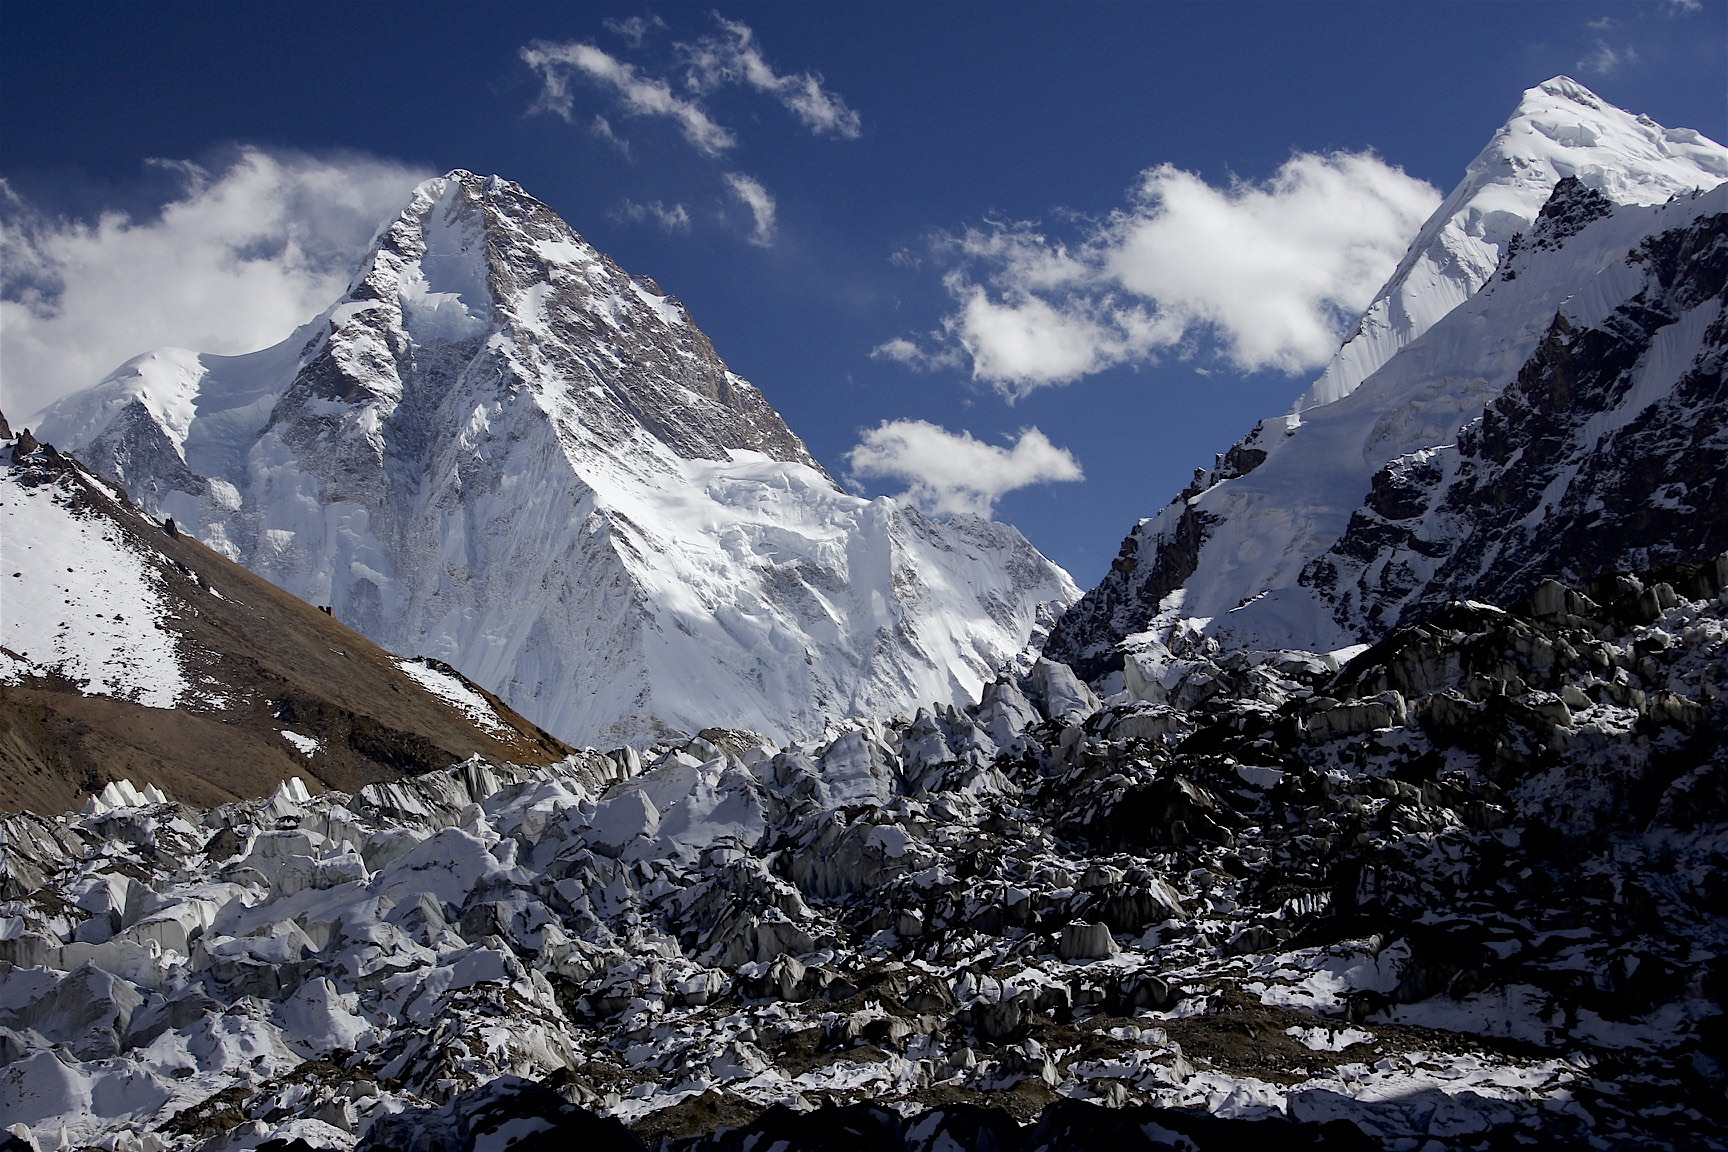 K2, Pakistan is on the other side